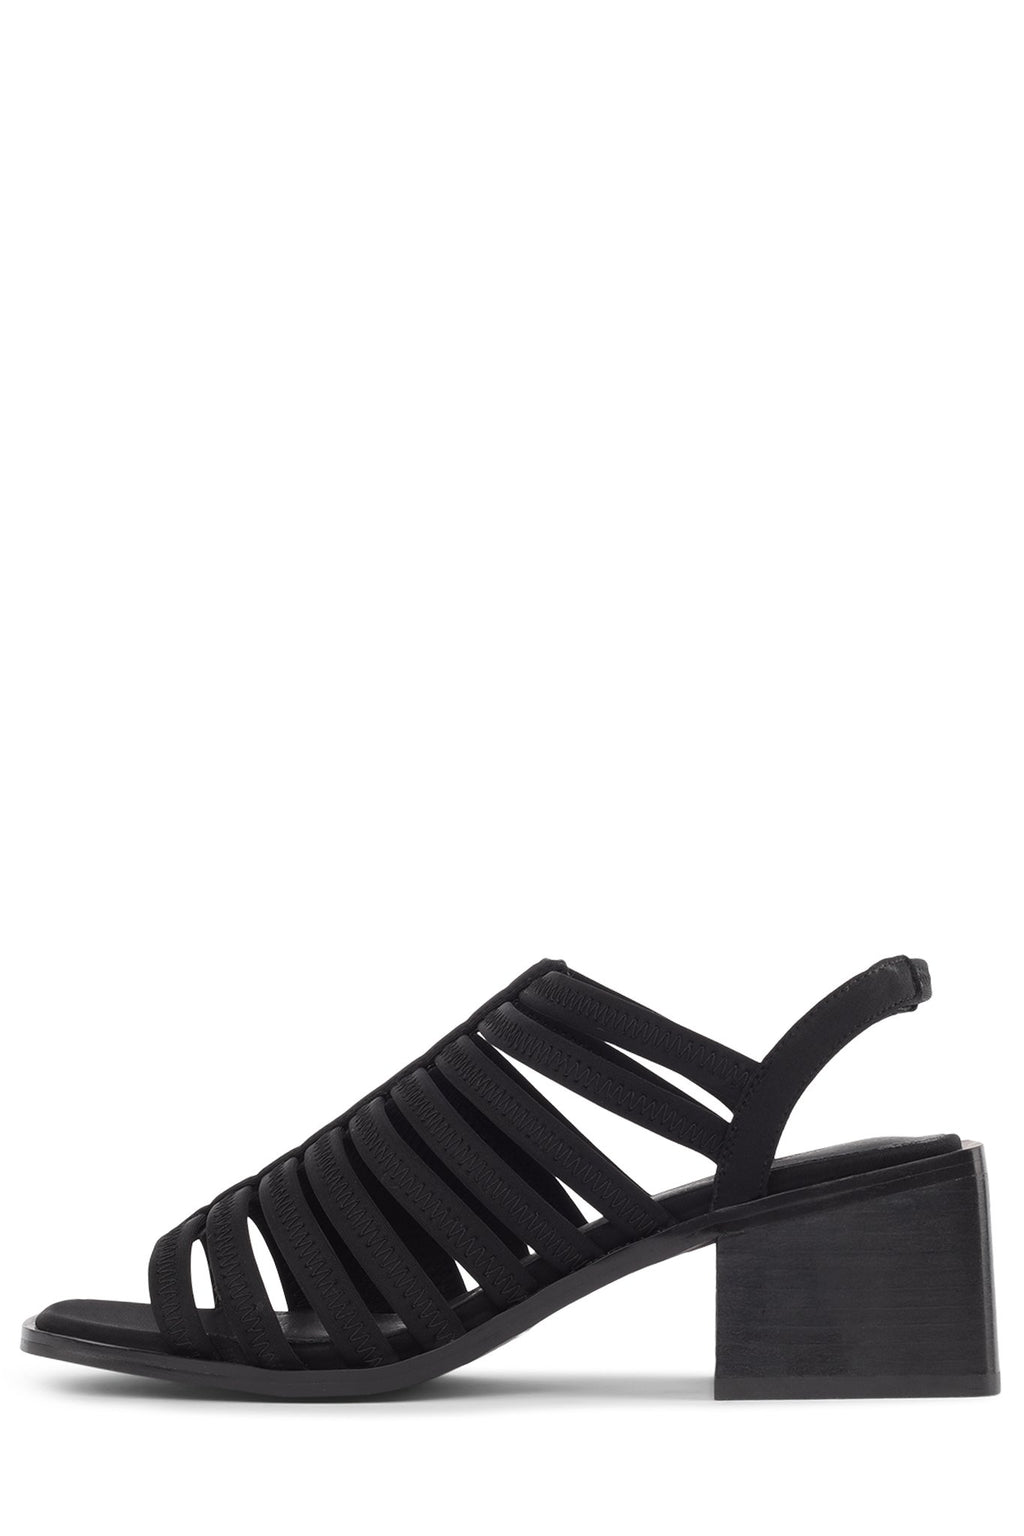 BRYLEE Heeled Sandal Jeffrey Campbell Black Fabric 6